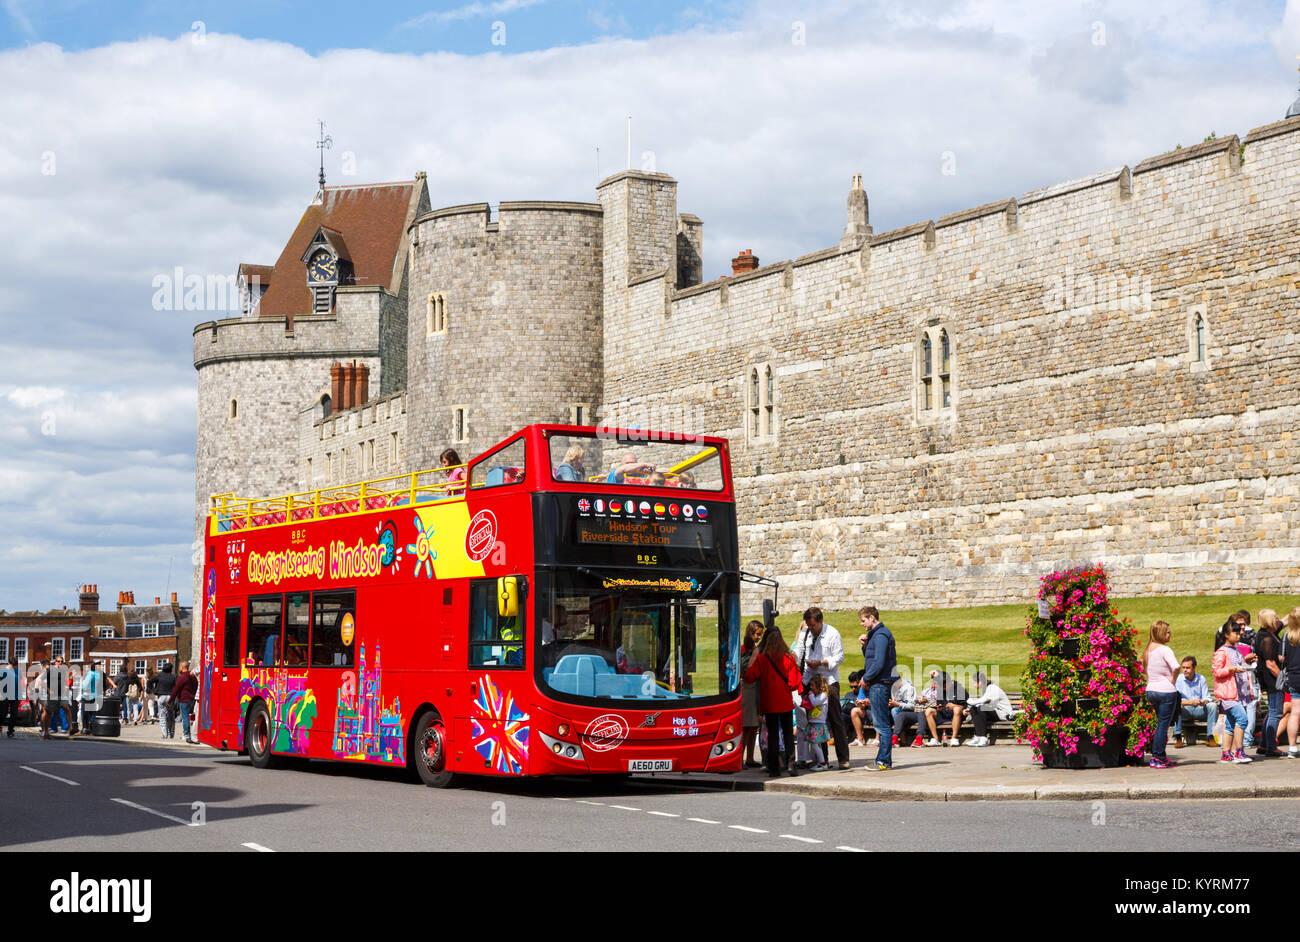 Open-top sightseeing red bus parked outside the walls and tower of Windsor Castle viewed from the town centre on - Stock Image